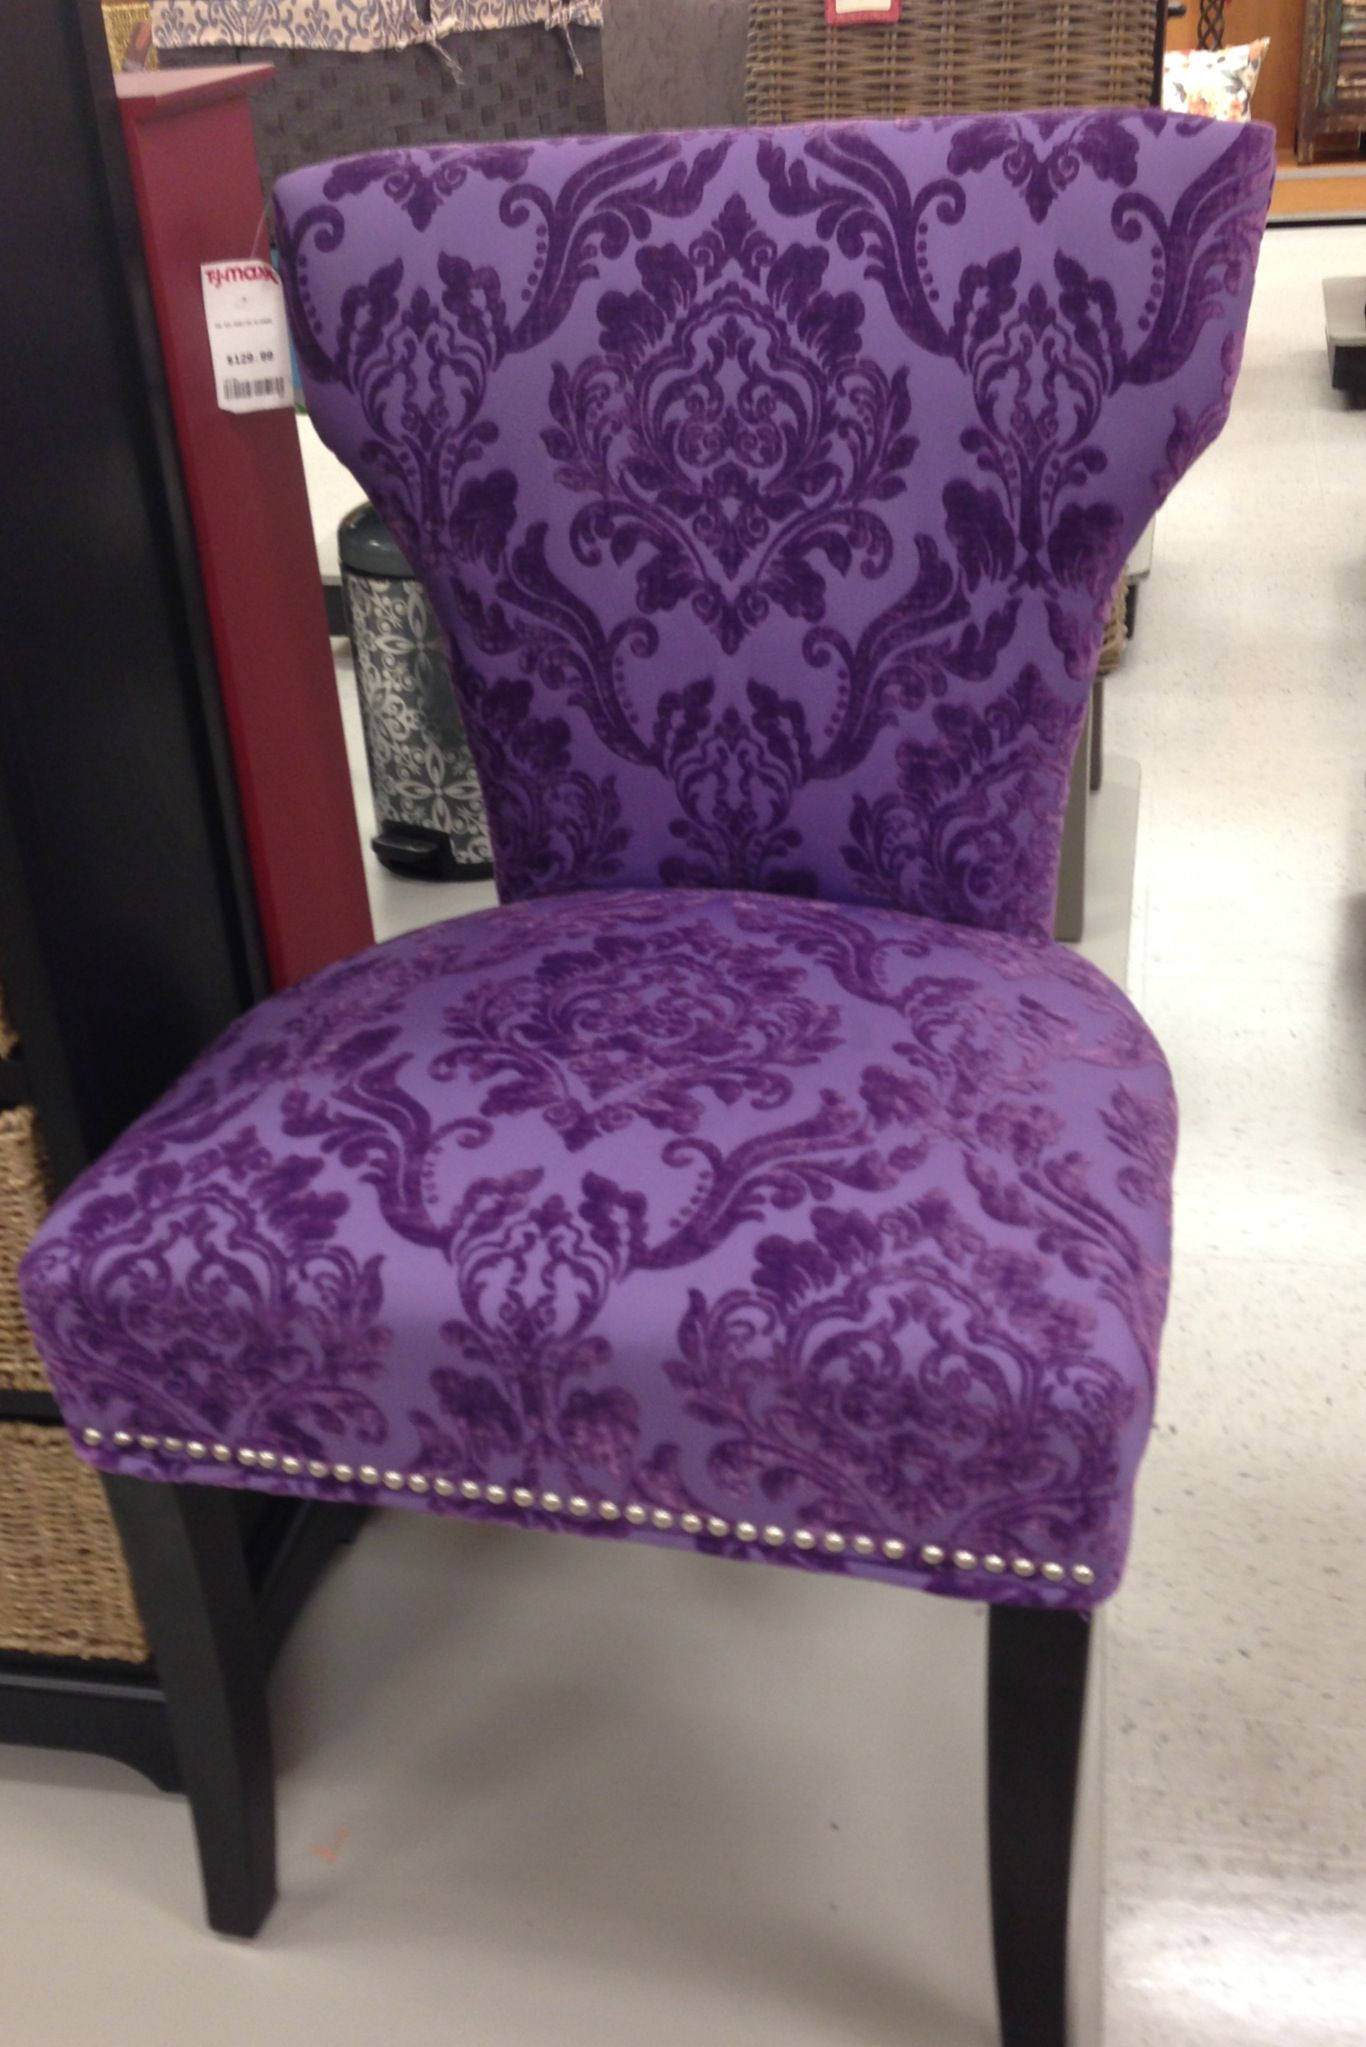 Love This Purple Chair A Whole Formal Dining Set With Them Would Be Perfect In Fact Black Table